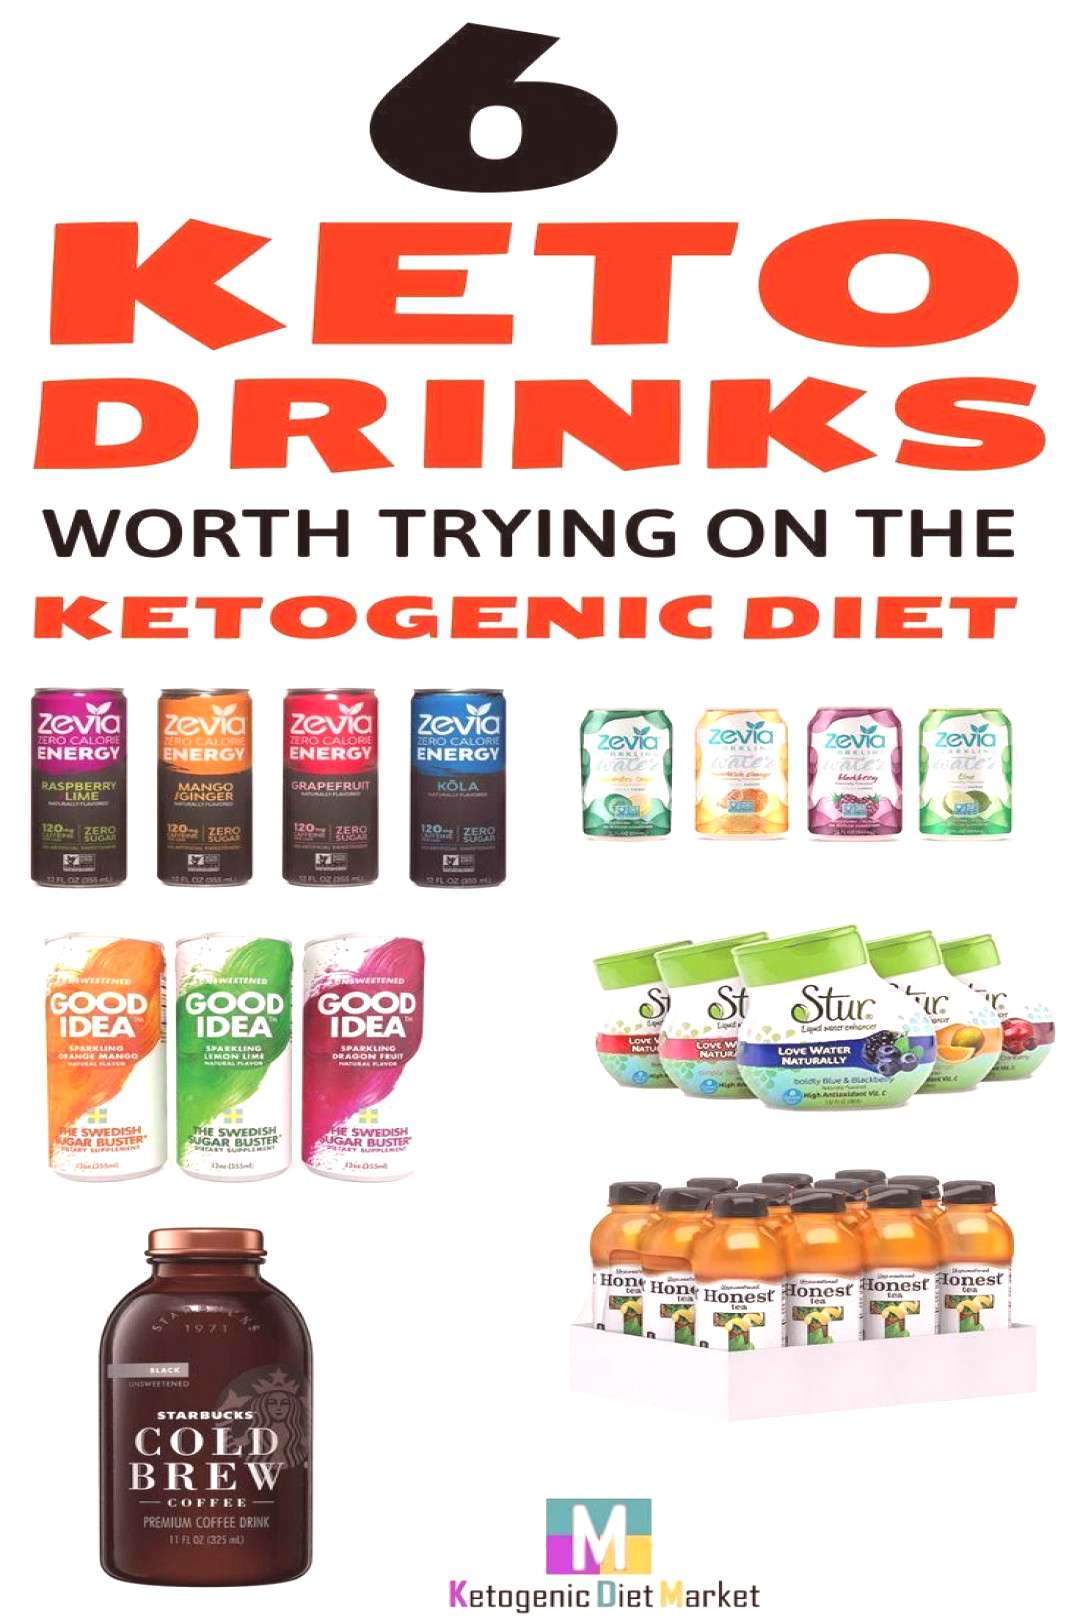 Keto Diet Shop - The Ultimate Ketogenic Support Supplement 6 keto drinks to enjoy on the ketogenic